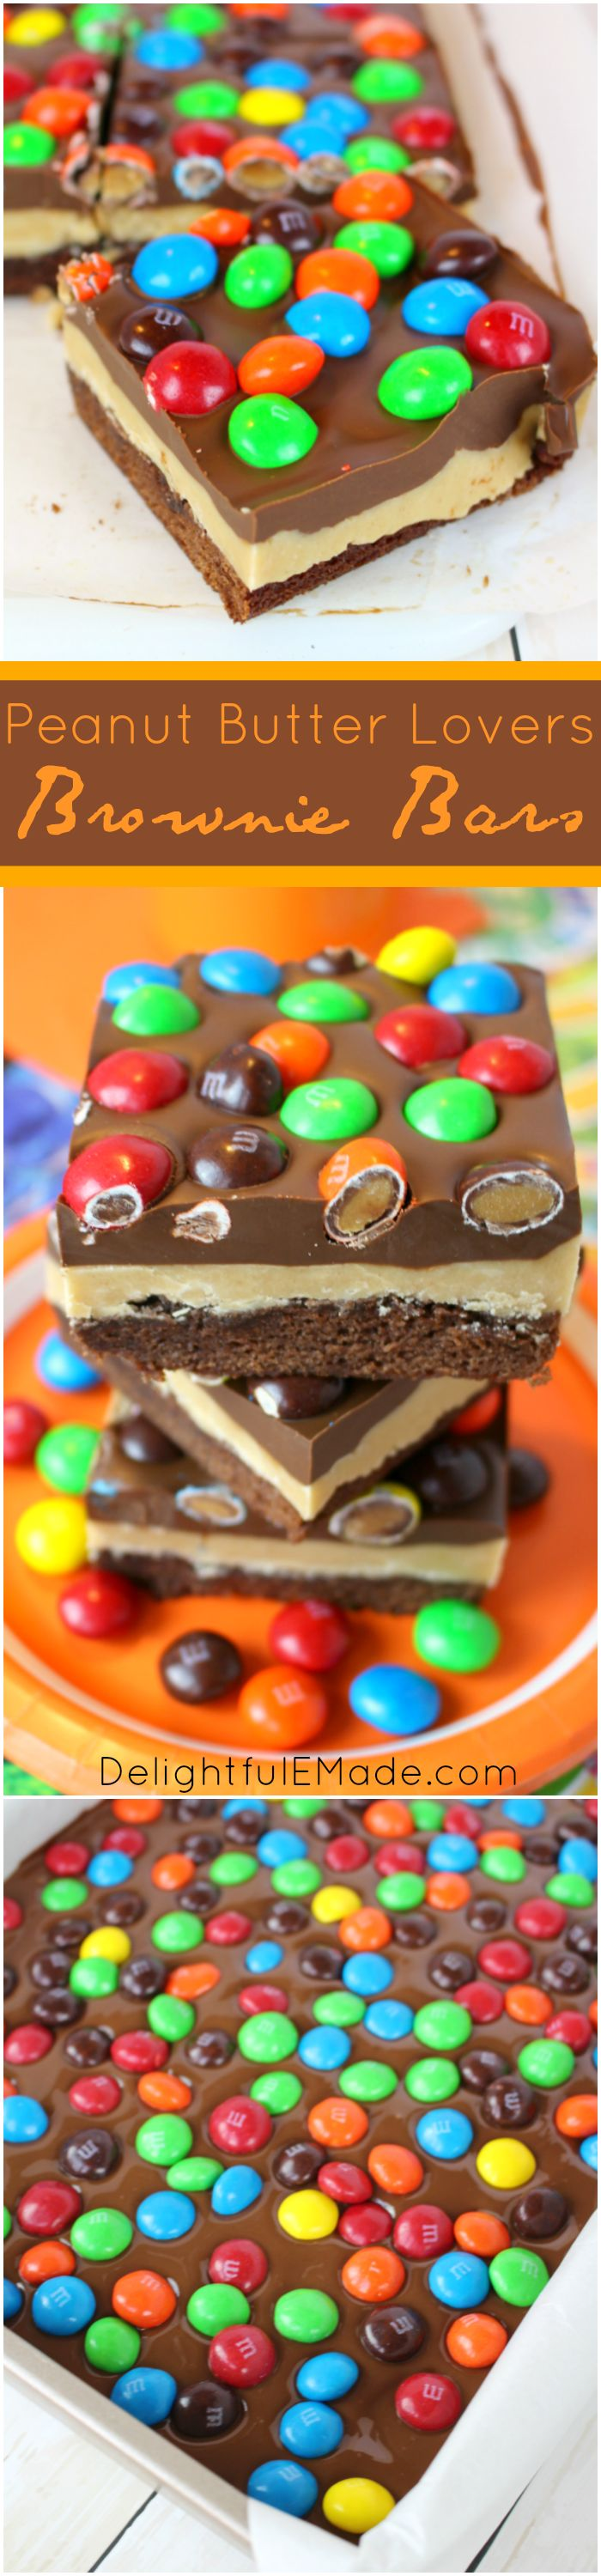 Peanut Butter Lovers Brownie Bars with M&M'S are a delicious treat for the peanut butter fan in your life!